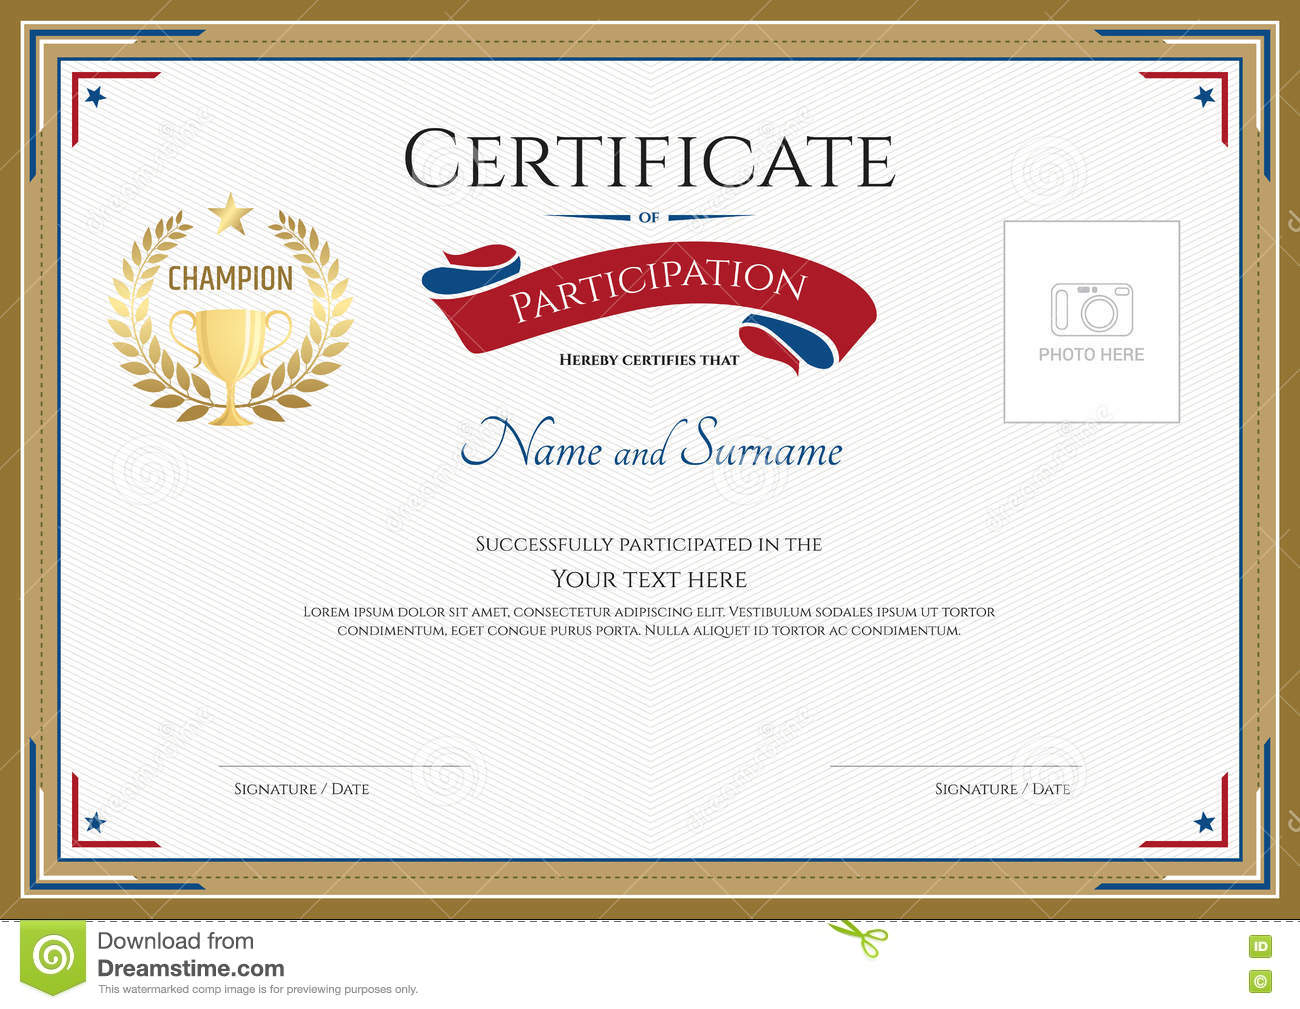 Certificate template for achievement appreciation or certificate of participation template in sport theme stock photo yadclub Choice Image